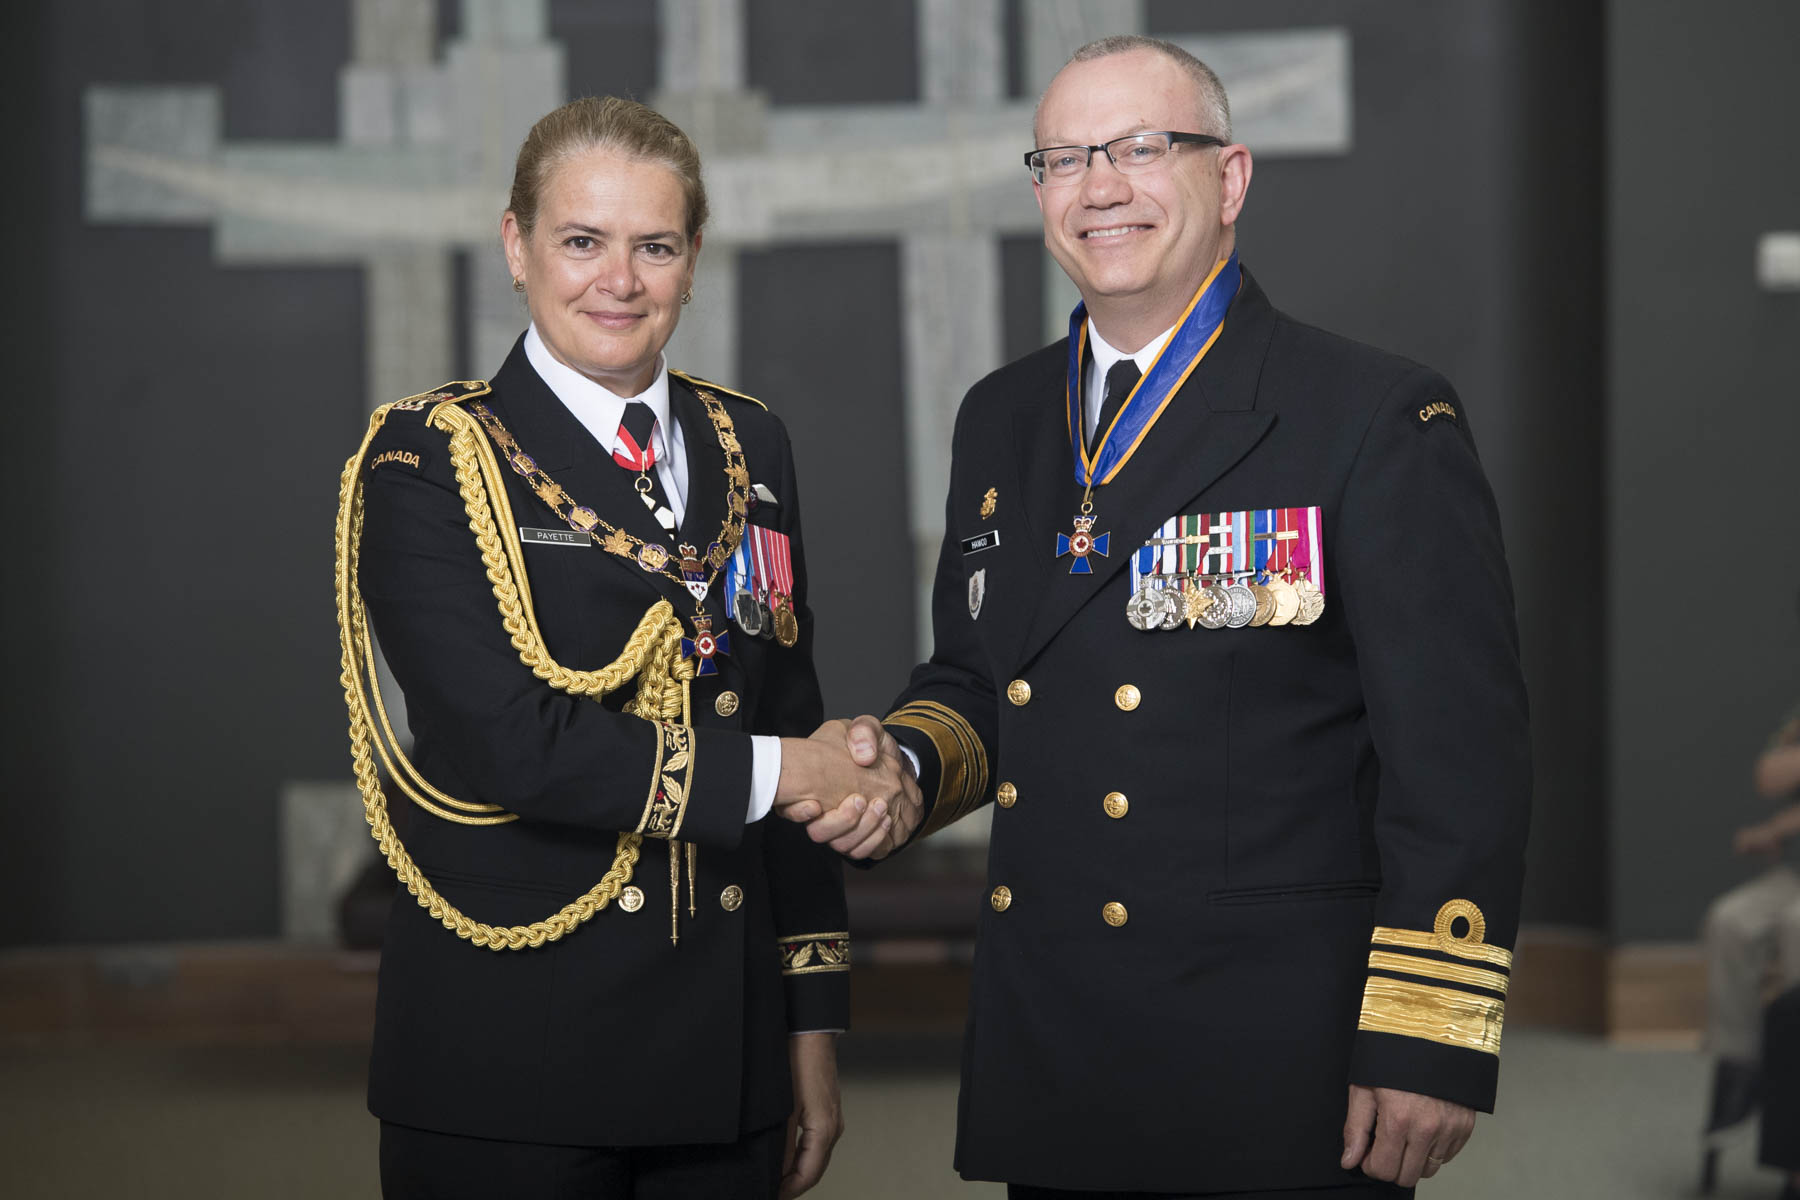 The Governor General bestowed the honour of Commander of the Order of Military Merit on Vice-Admiral Darren Carl Hawco, C.M.M., M.S.M., C.D.